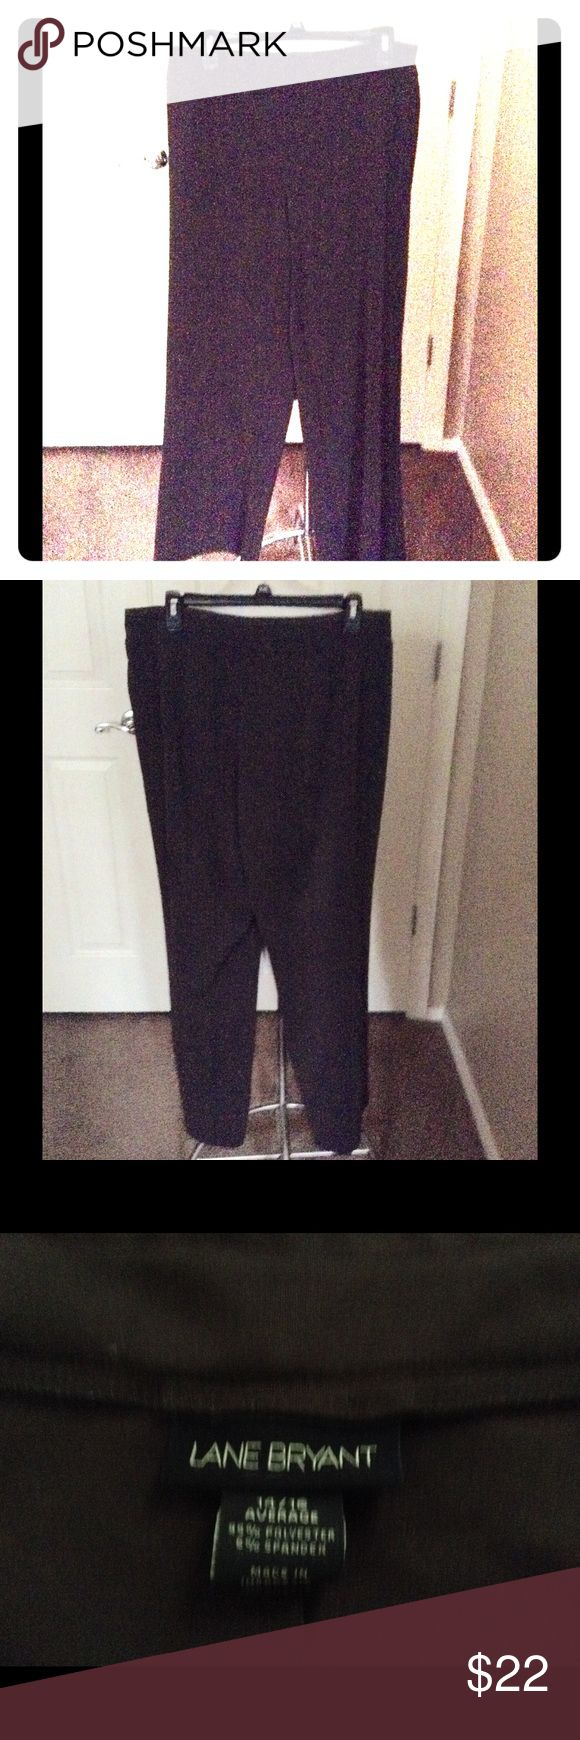 """Lane Bryant brown pants sz 14/16 Lane Bryant brown pants sz 14/16 Average  A beautiful pair of brown flat from pull on pants  Measurements length 40"""" inseam 30"""" waist 40"""" 95% polyester 5% spandex  Machine washable no pilling ,rips or stains from a smoke ,pet free home Lane Bryant Pants Skinny"""